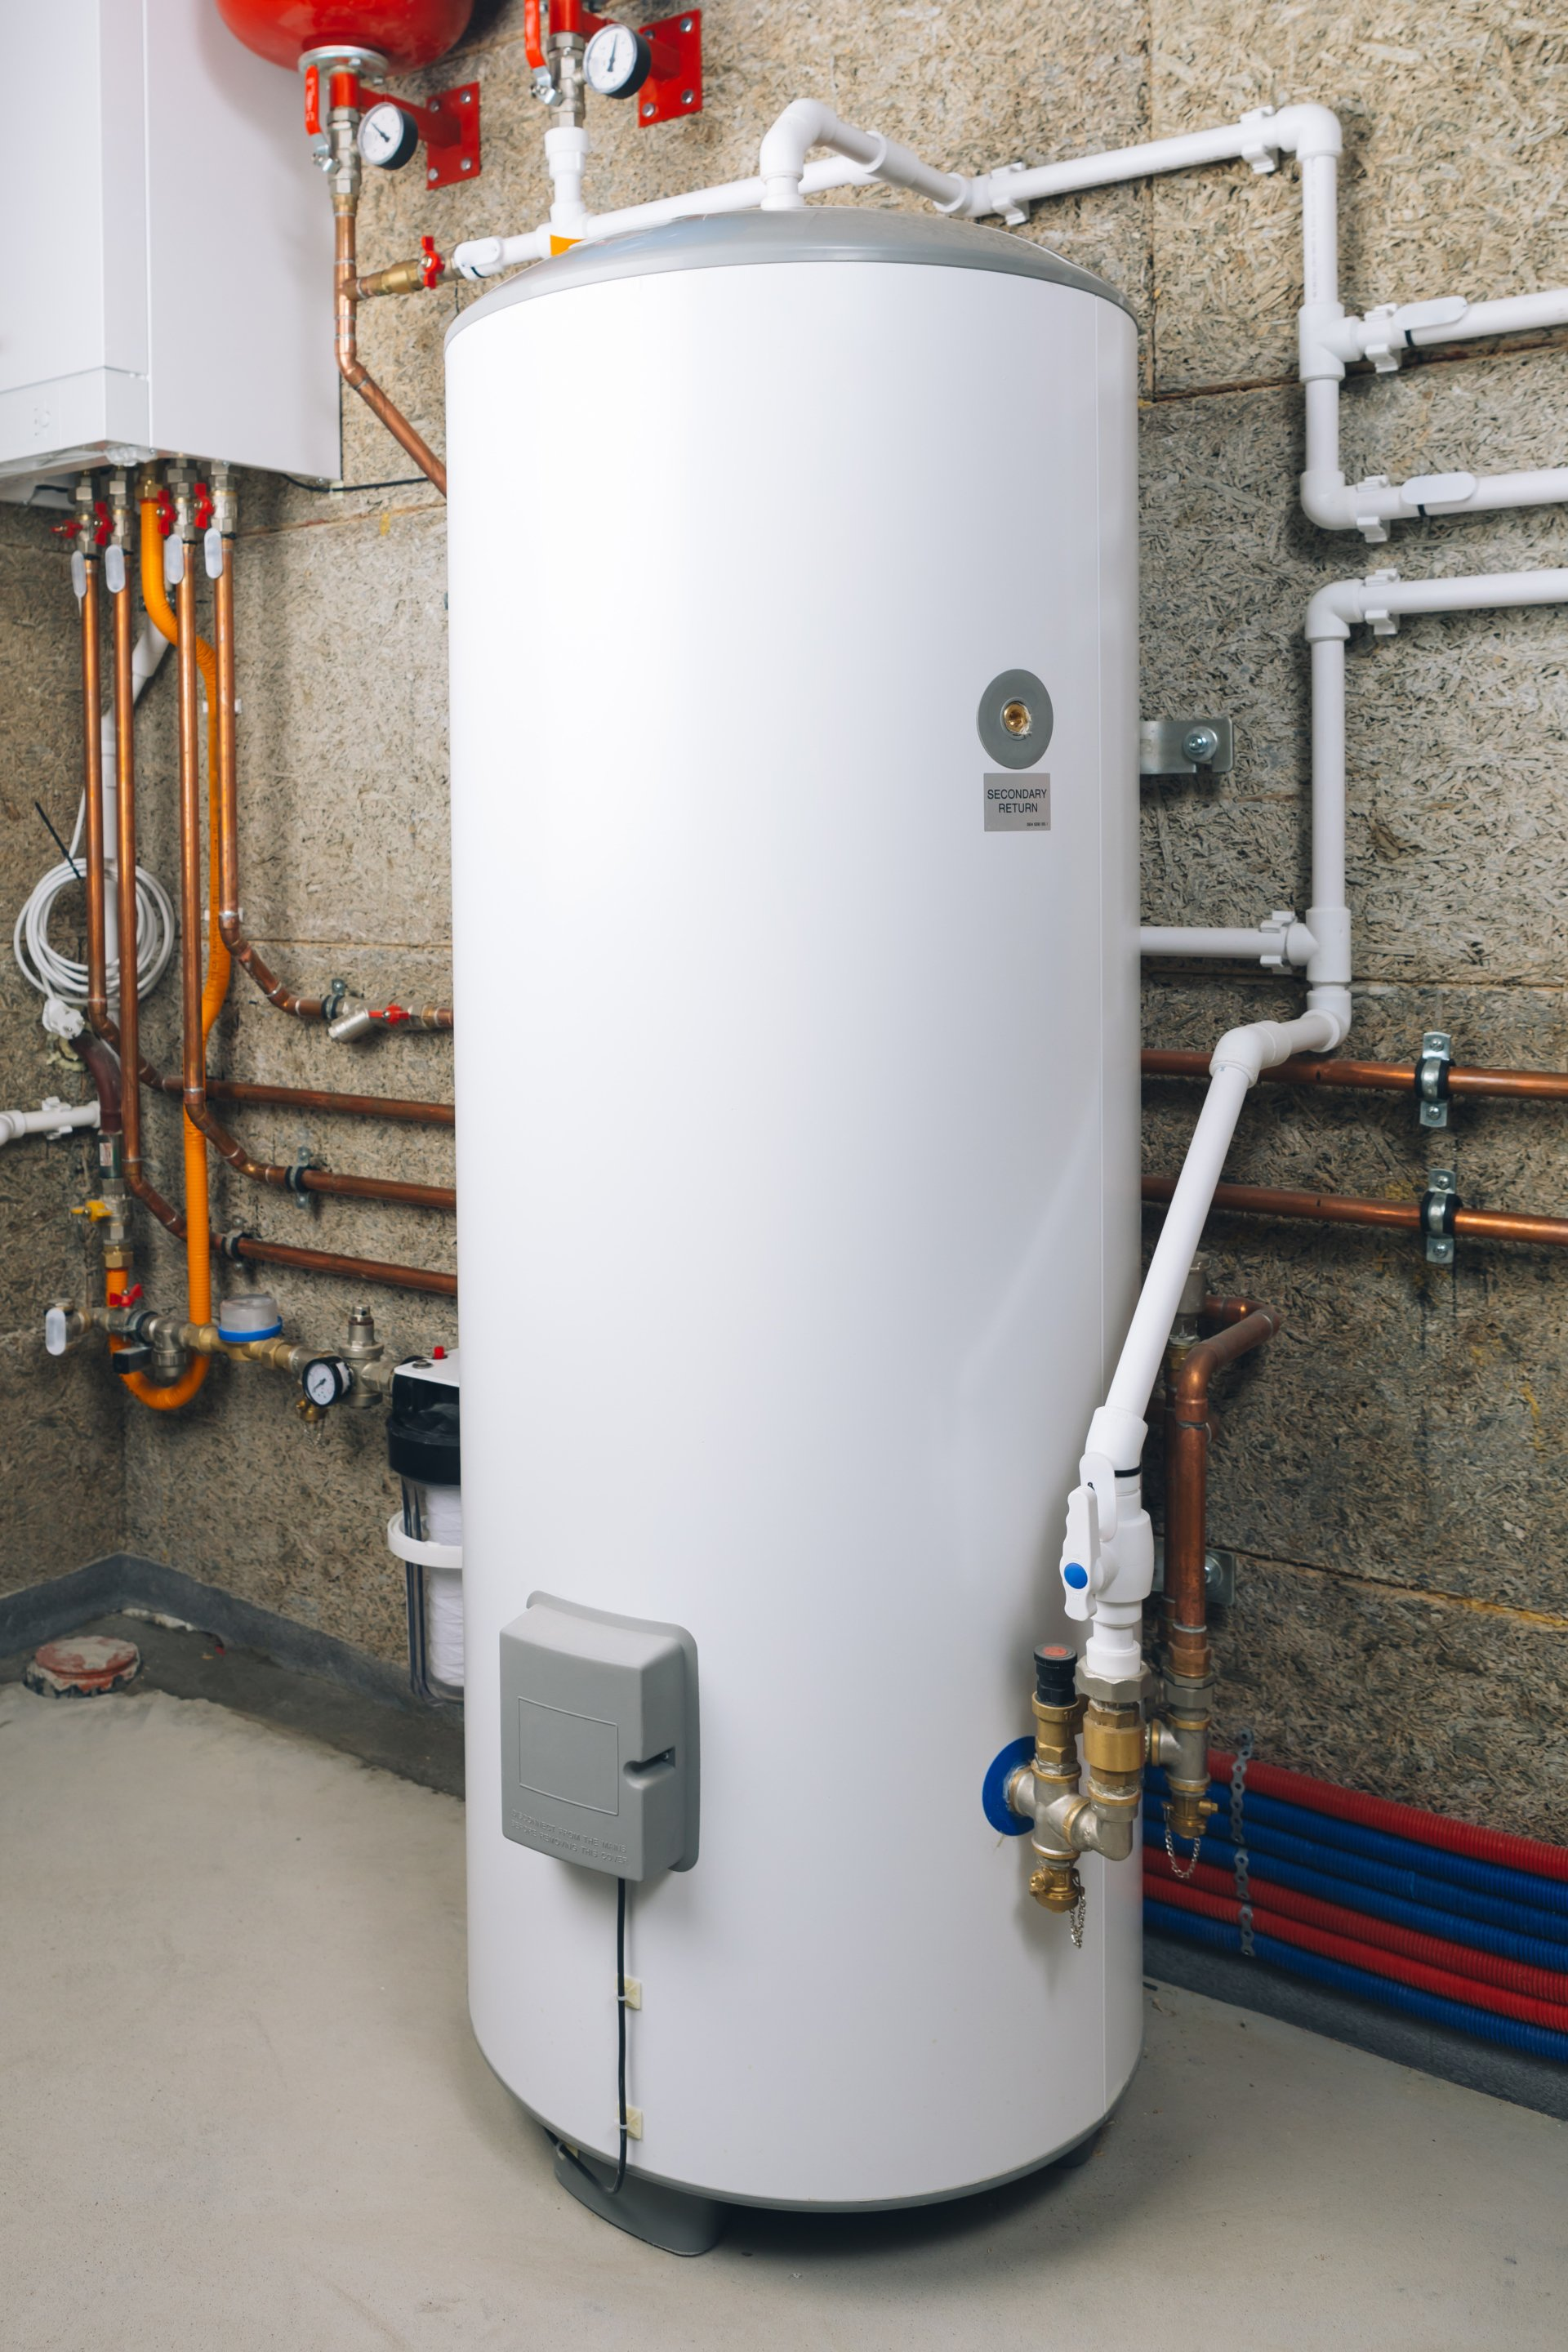 4 Common Water Heater Problems